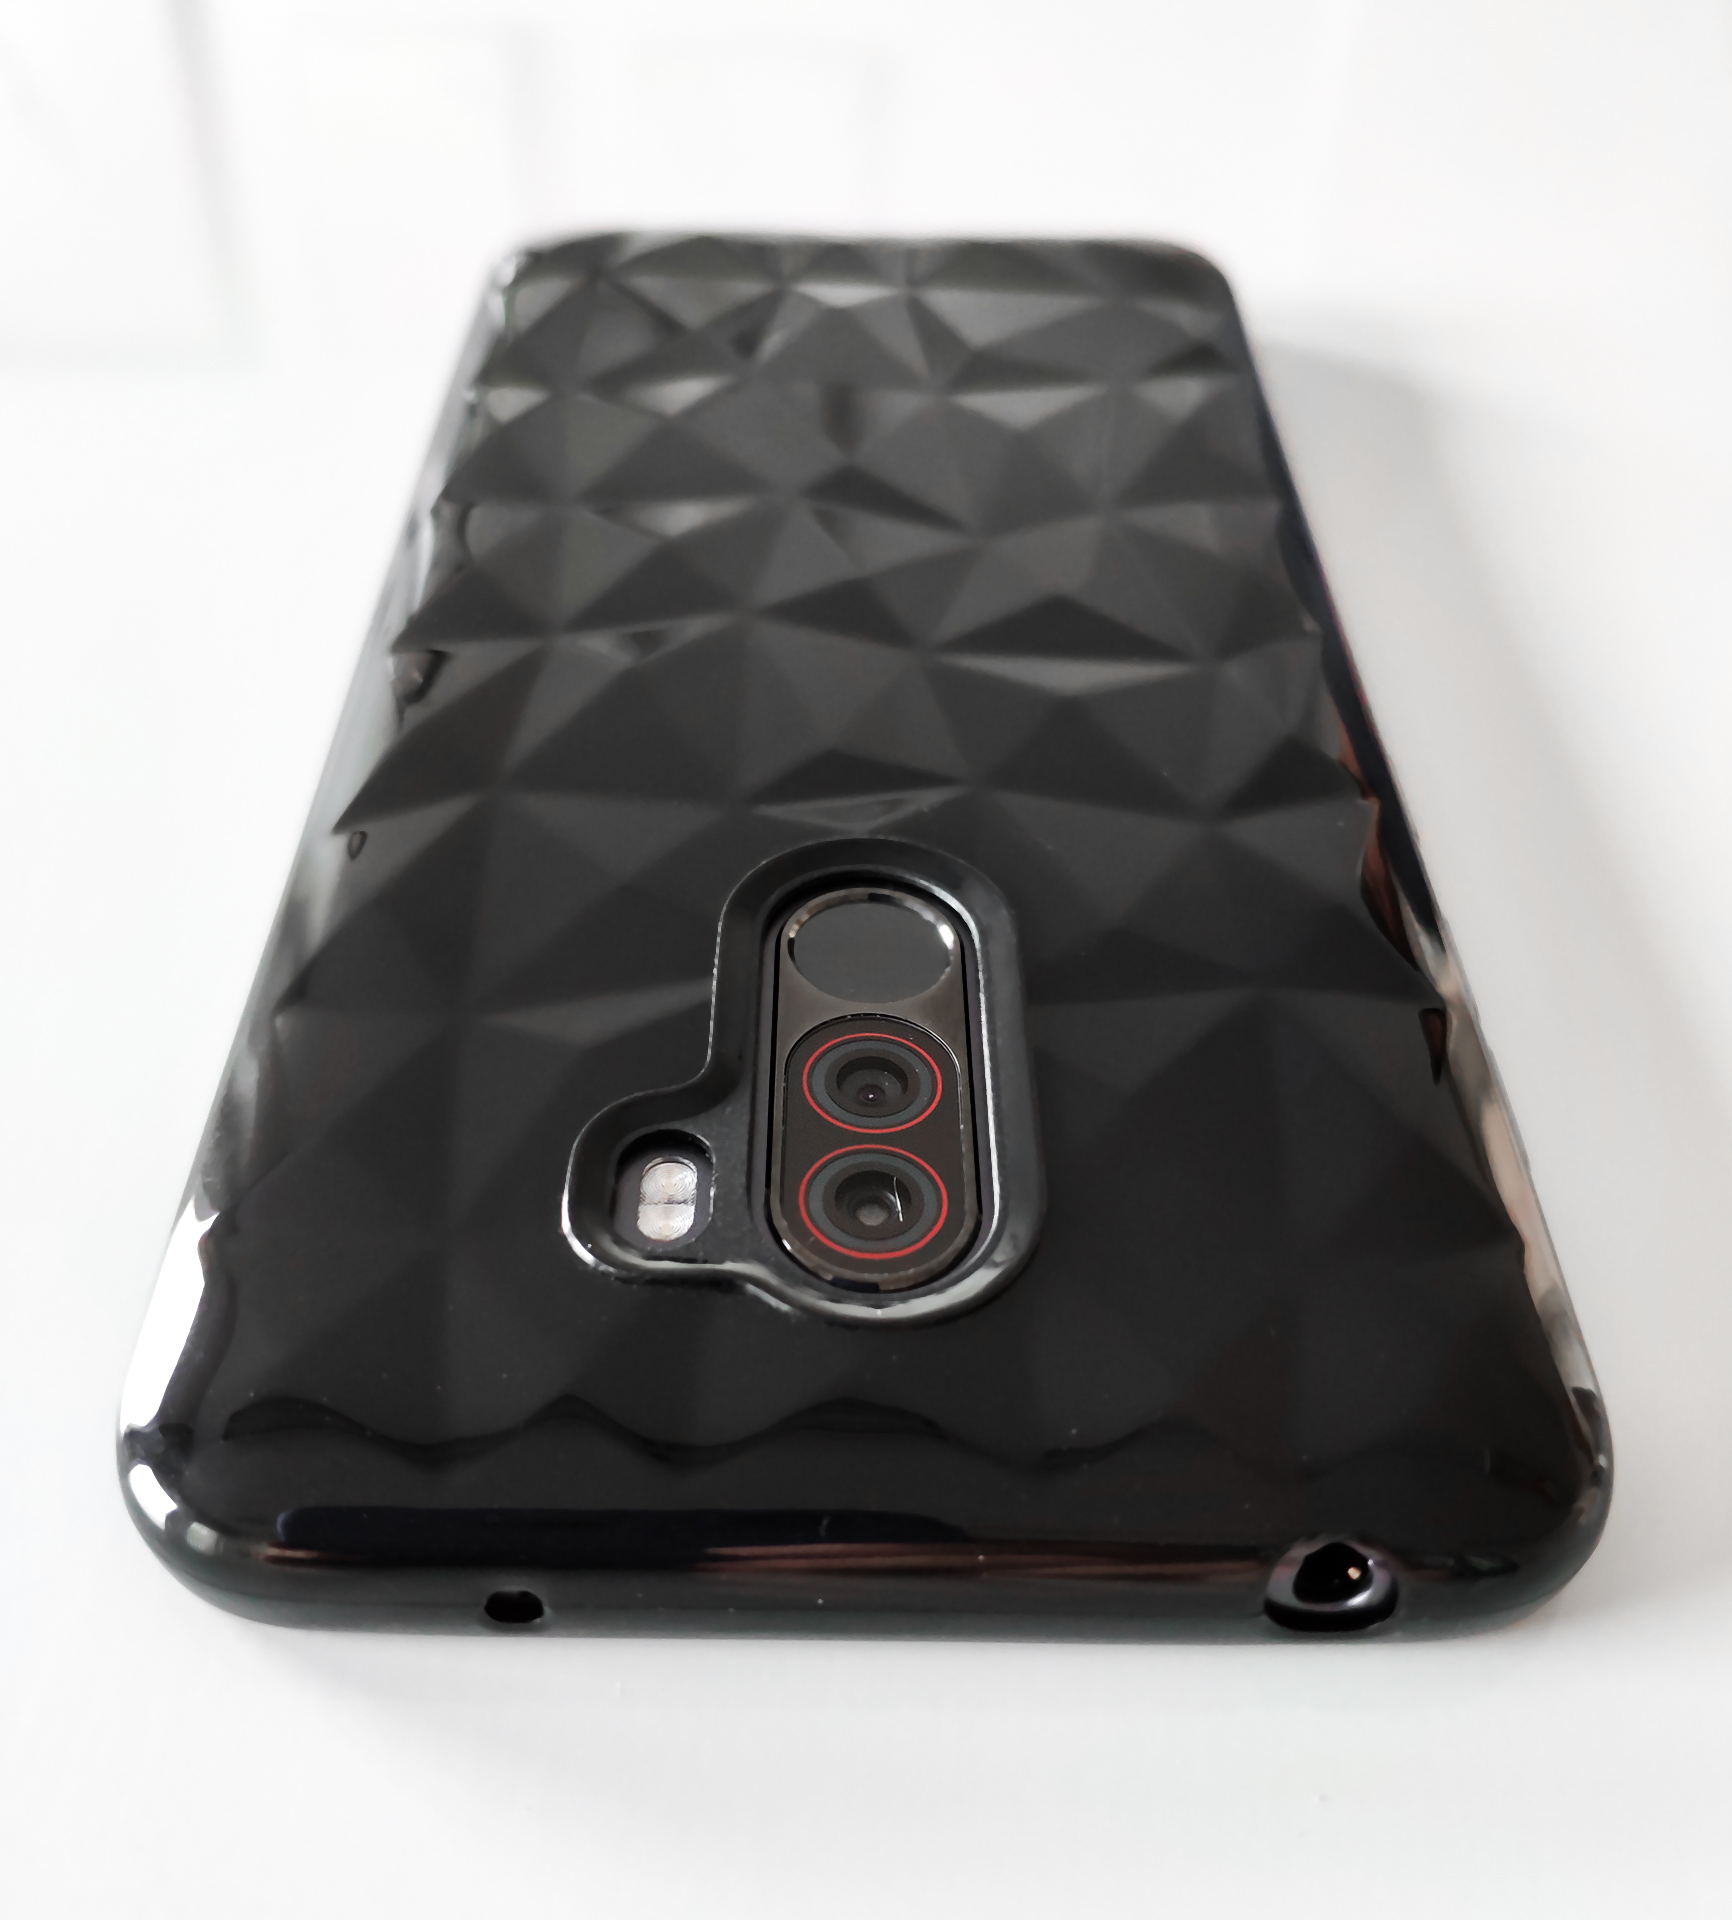 Pocophone F1 szilikon tok (Forcell PRISM), fekete